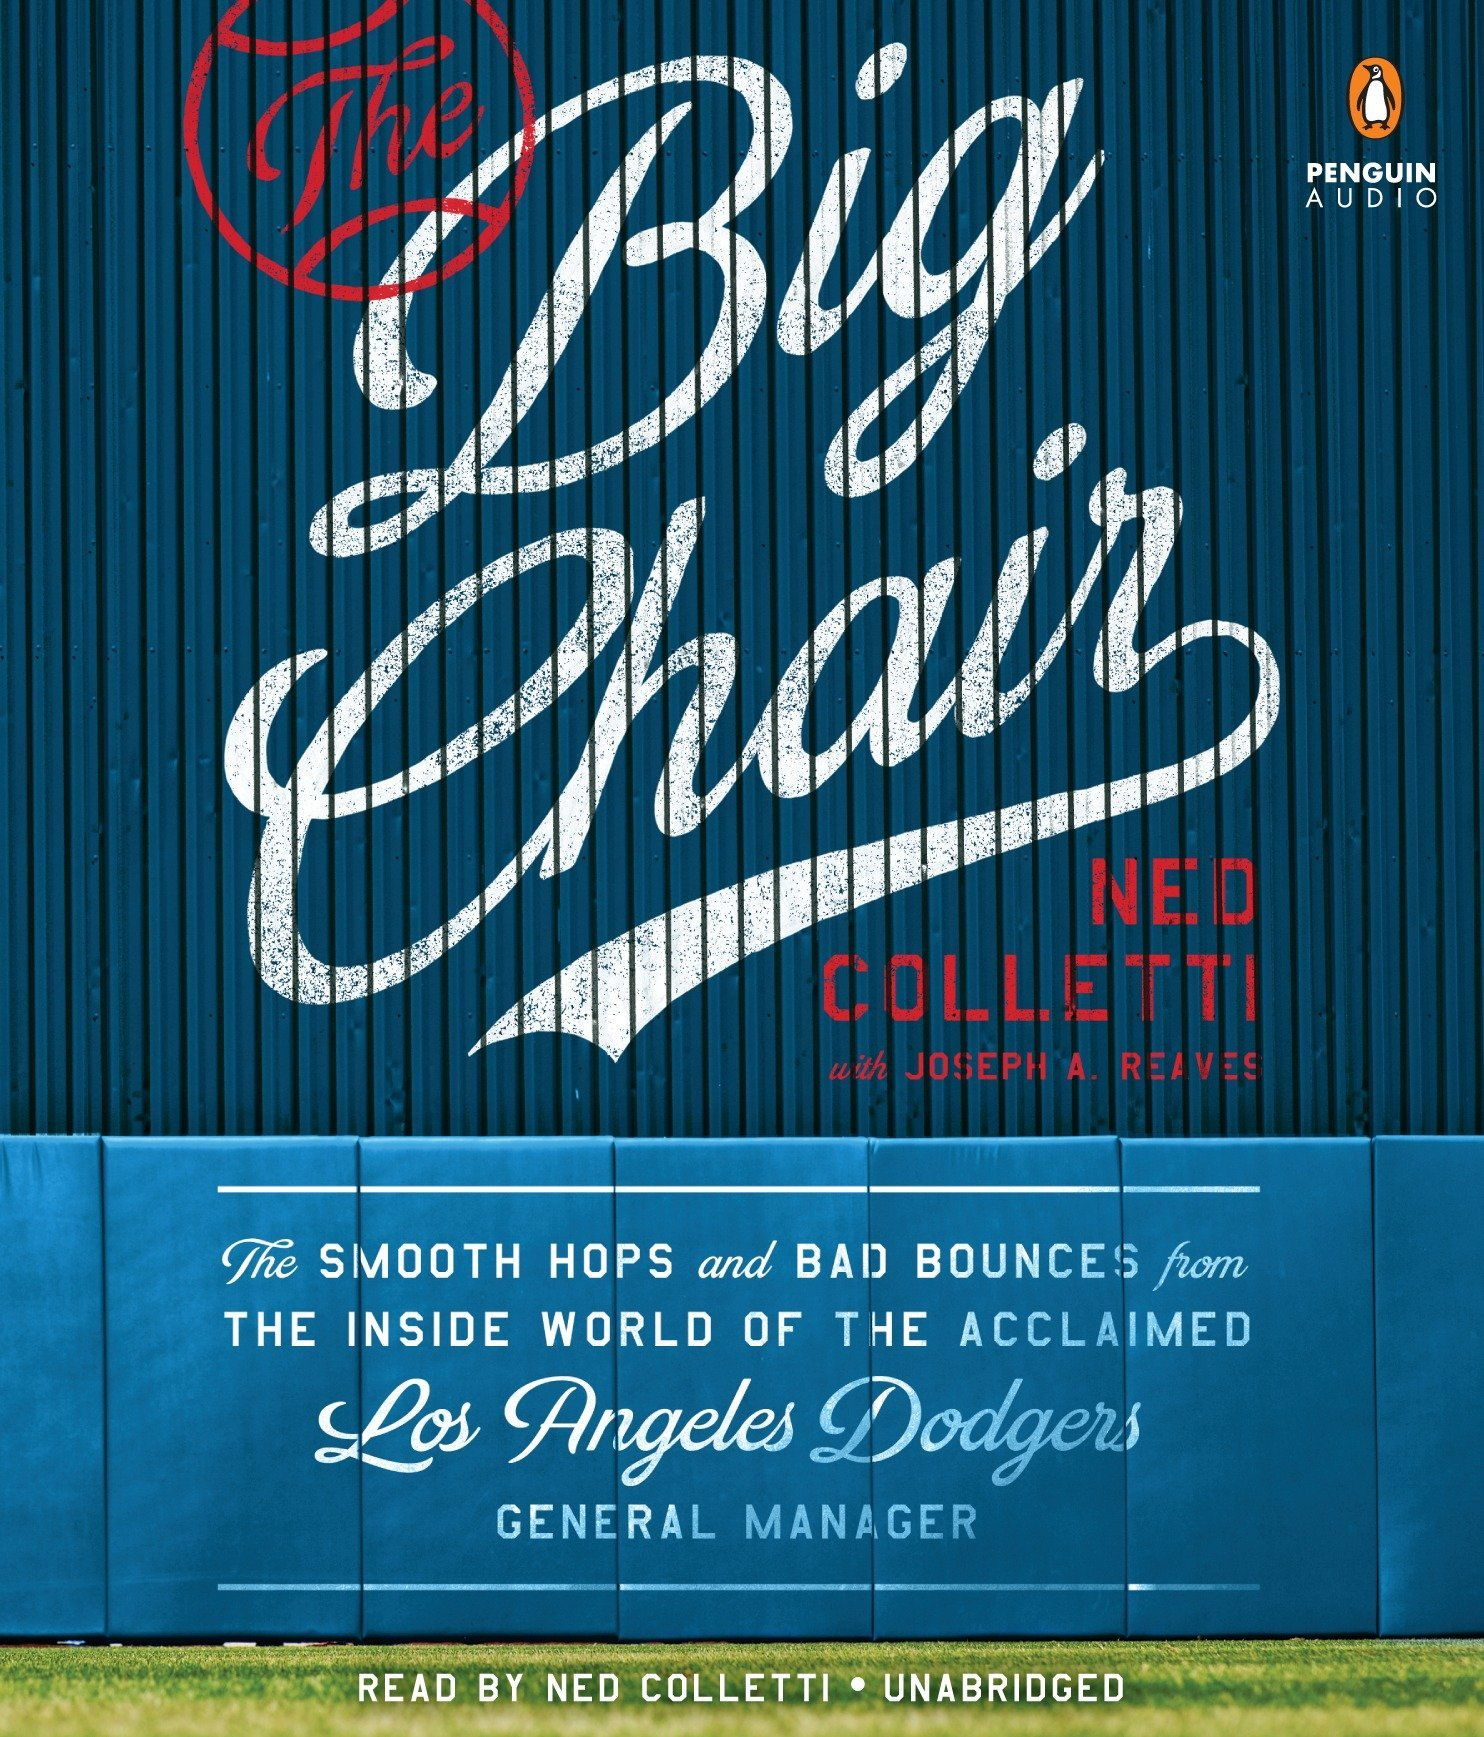 The Big Chair: The Smooth Hops and Bad Bounces from the Inside World of the Acclaimed Los Angeles Dodgers General Manager by Penguin Audio (Image #1)